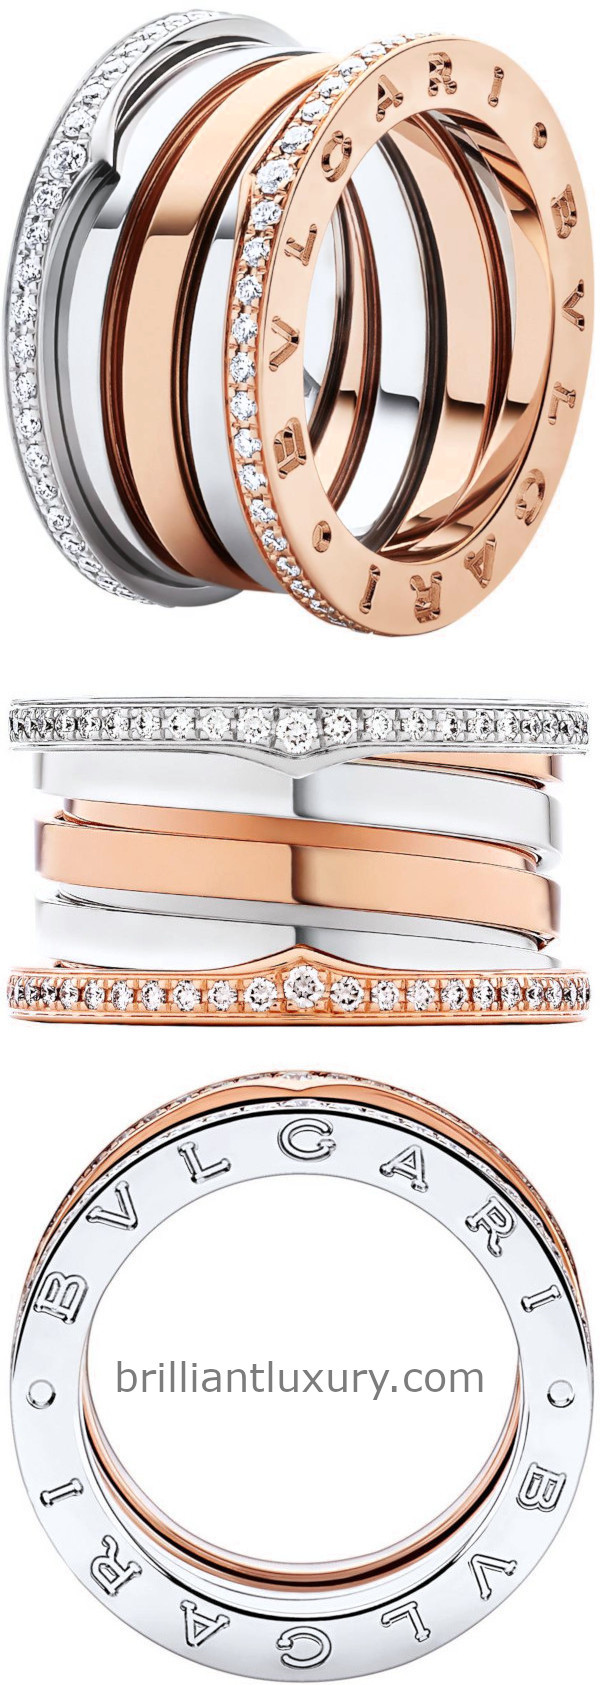 Bvlgari B.Zero1 four band ring in 18kt rose and white gold set with pavé diamonds on the edges